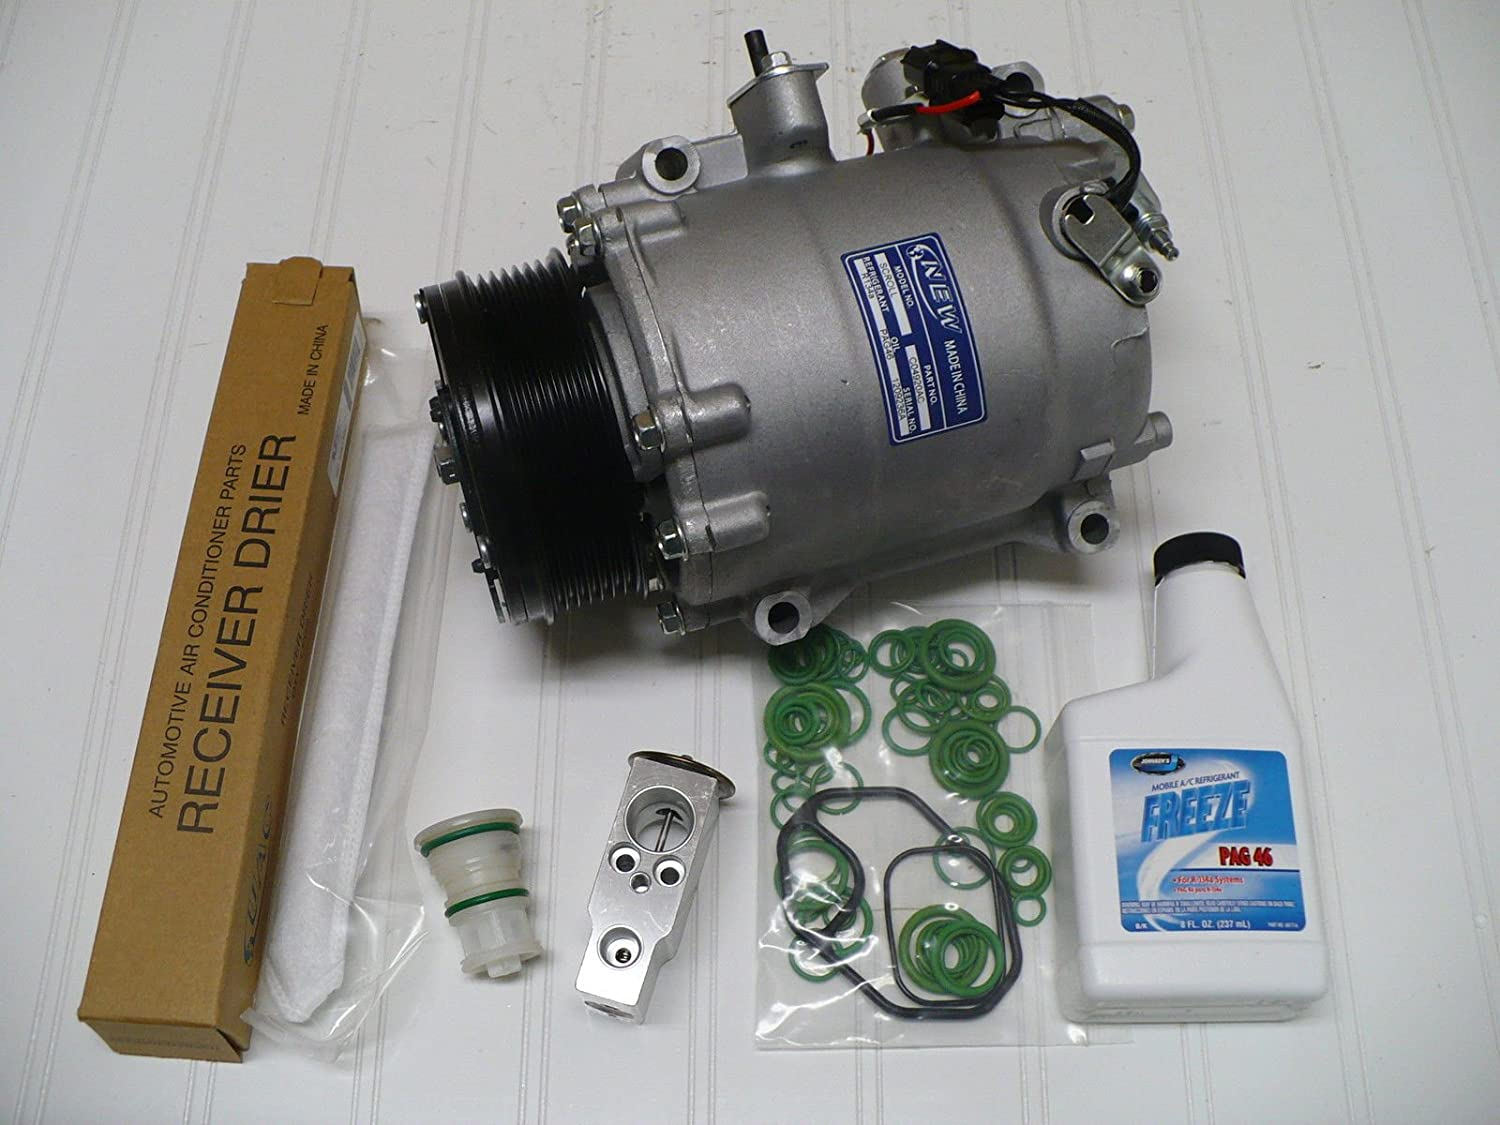 Amazon.com: New A/C Compressor Kit for 2007-2015 Honda CR-V, 2012-2014 Honda Si Coupe: Automotive